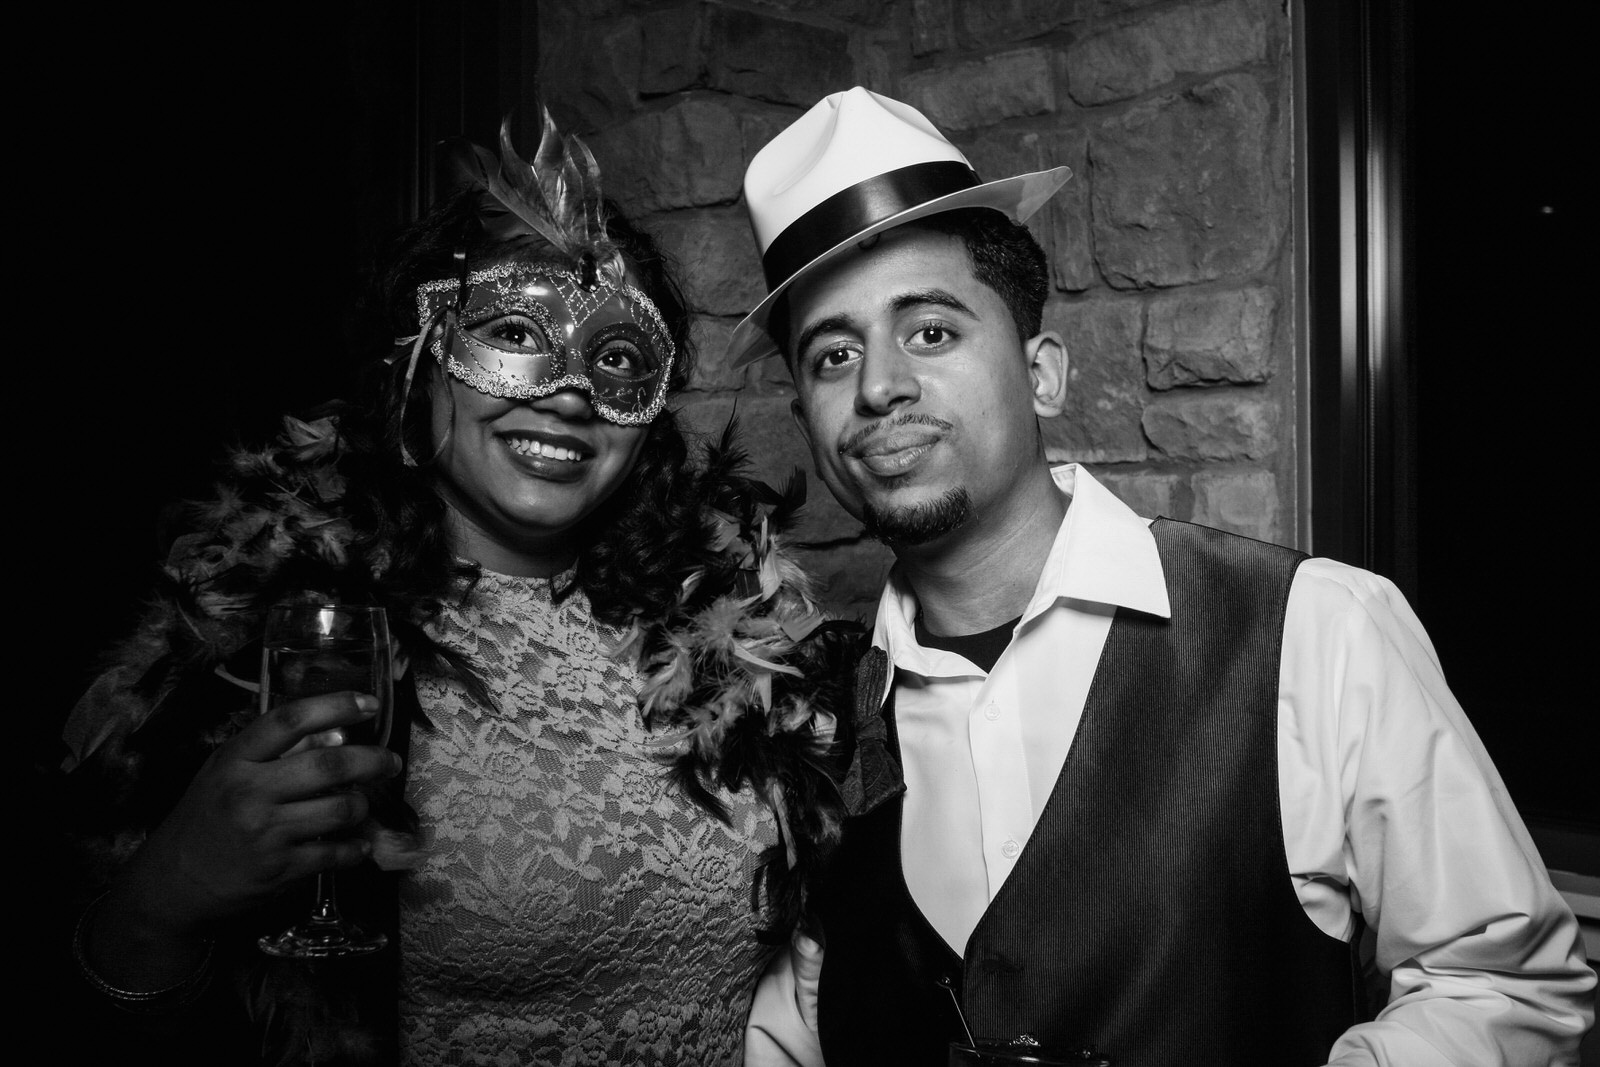 Vanessa-Jonathan-Wedding-Photo-Booth-67.jpg